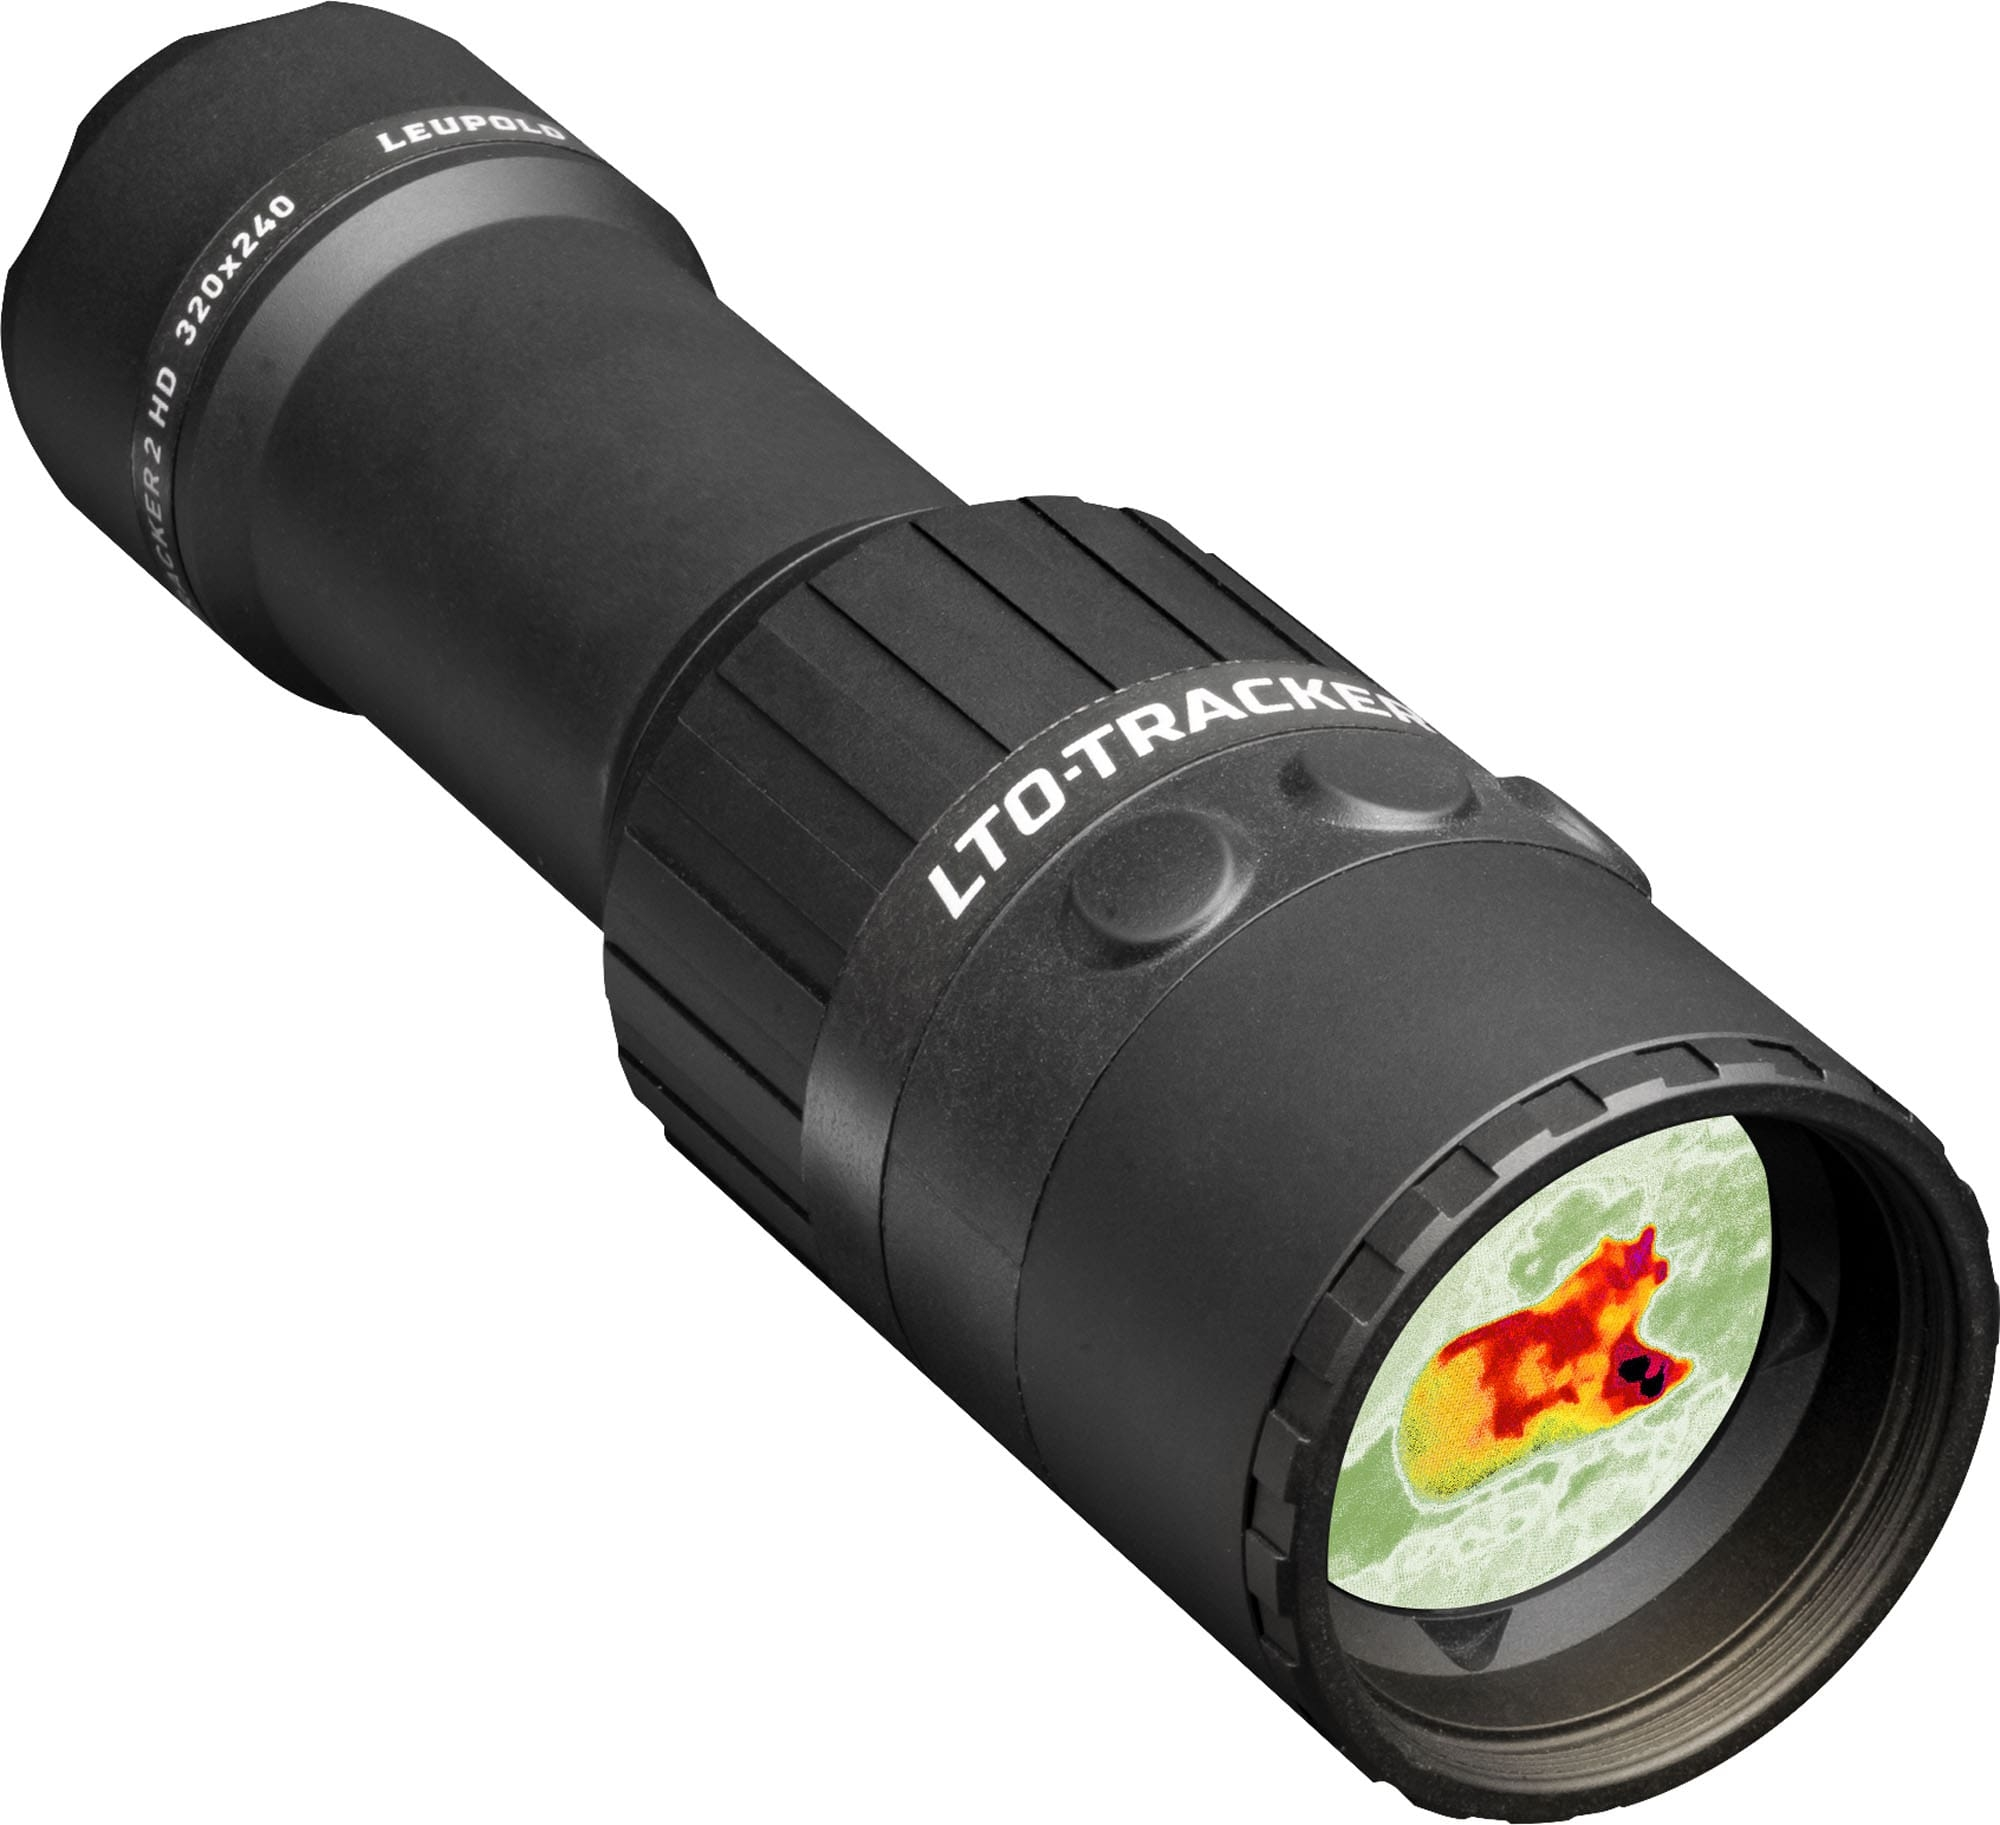 Leupold LTO Tracker 2 HD